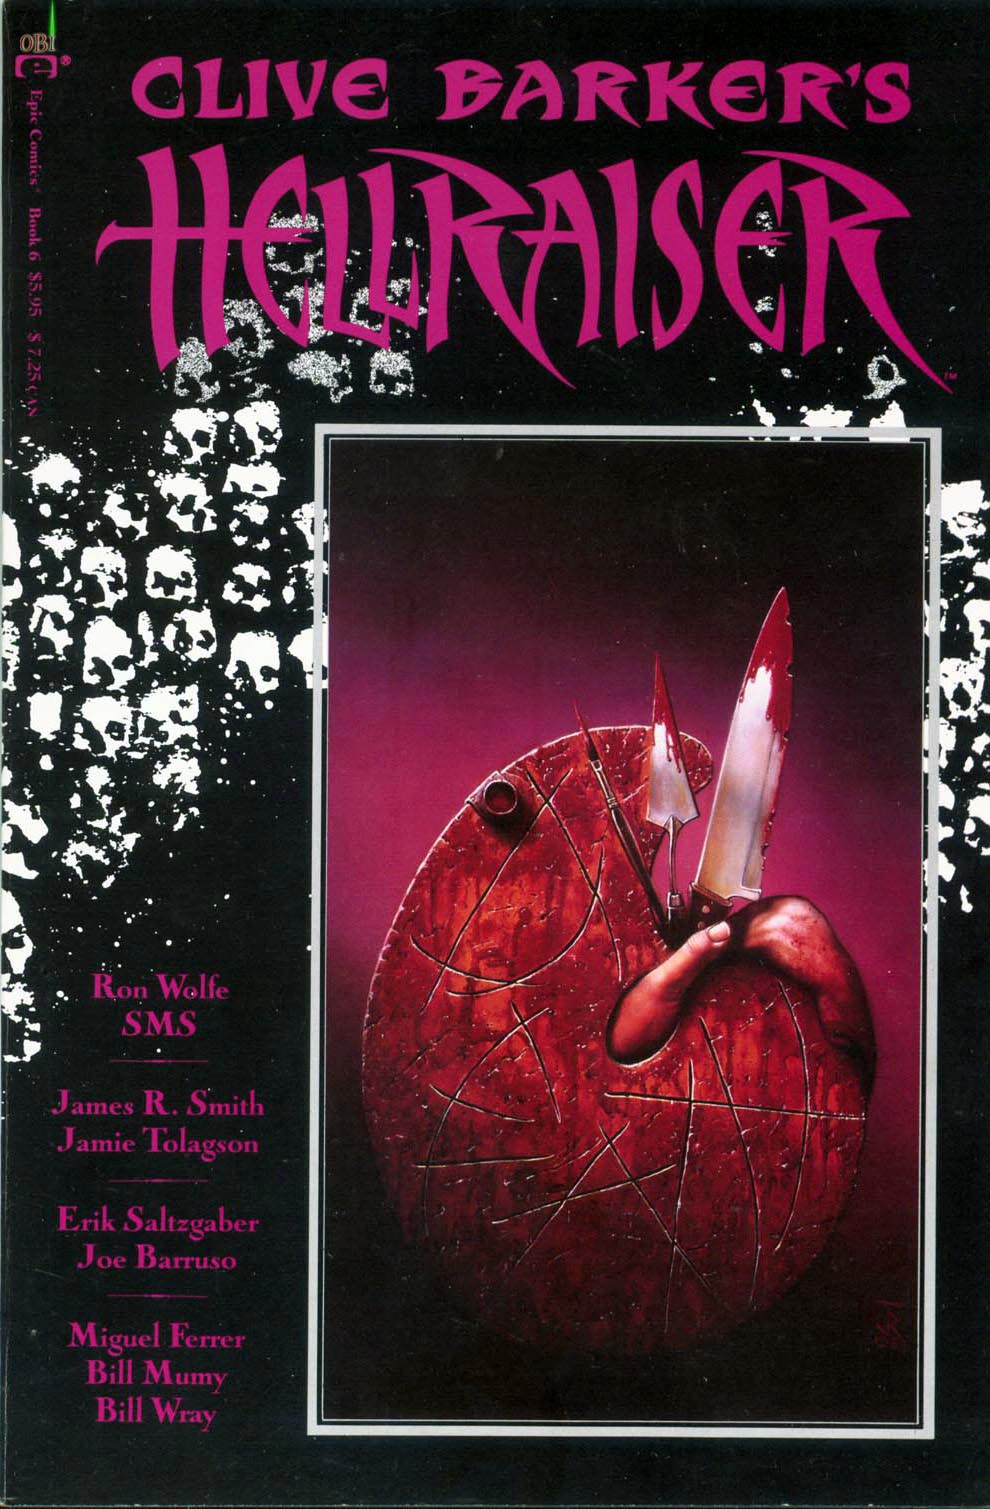 Clive Barker's Hellraiser issue 6 Retro Review